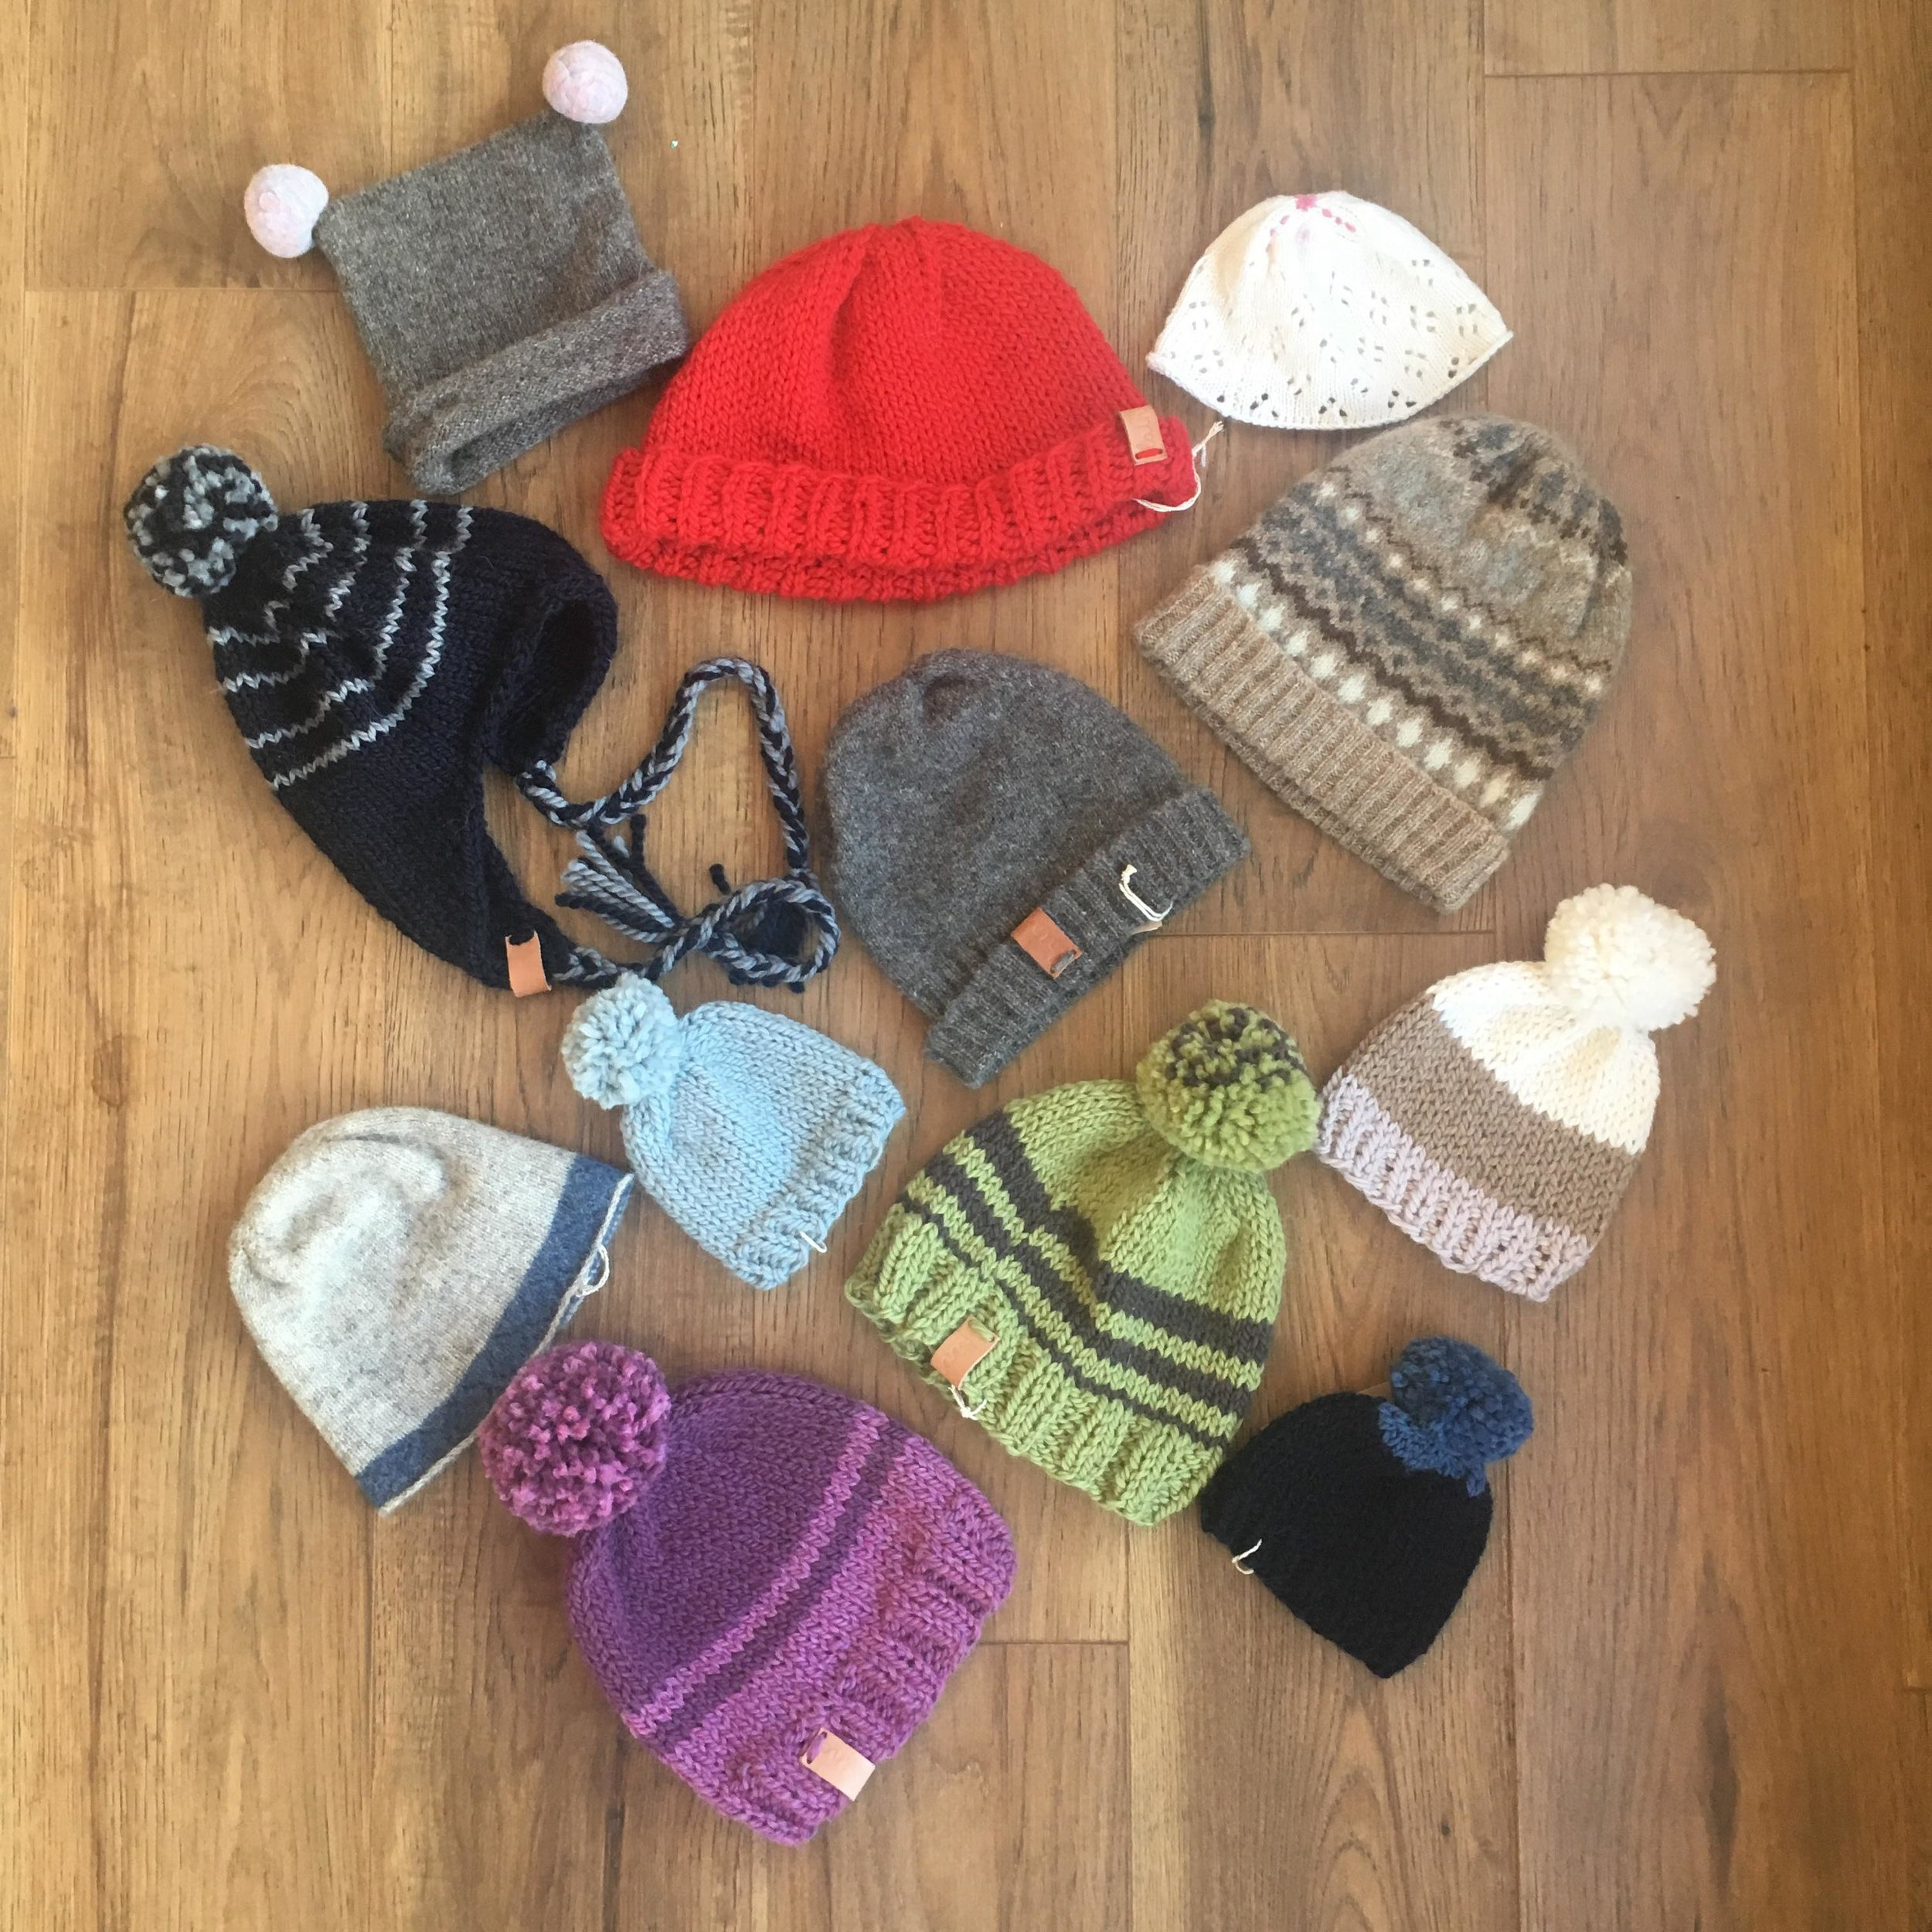 A selection of the ready to wear hat styles we stock - still can't find one for you? Our bespoke service is exactly the same price.